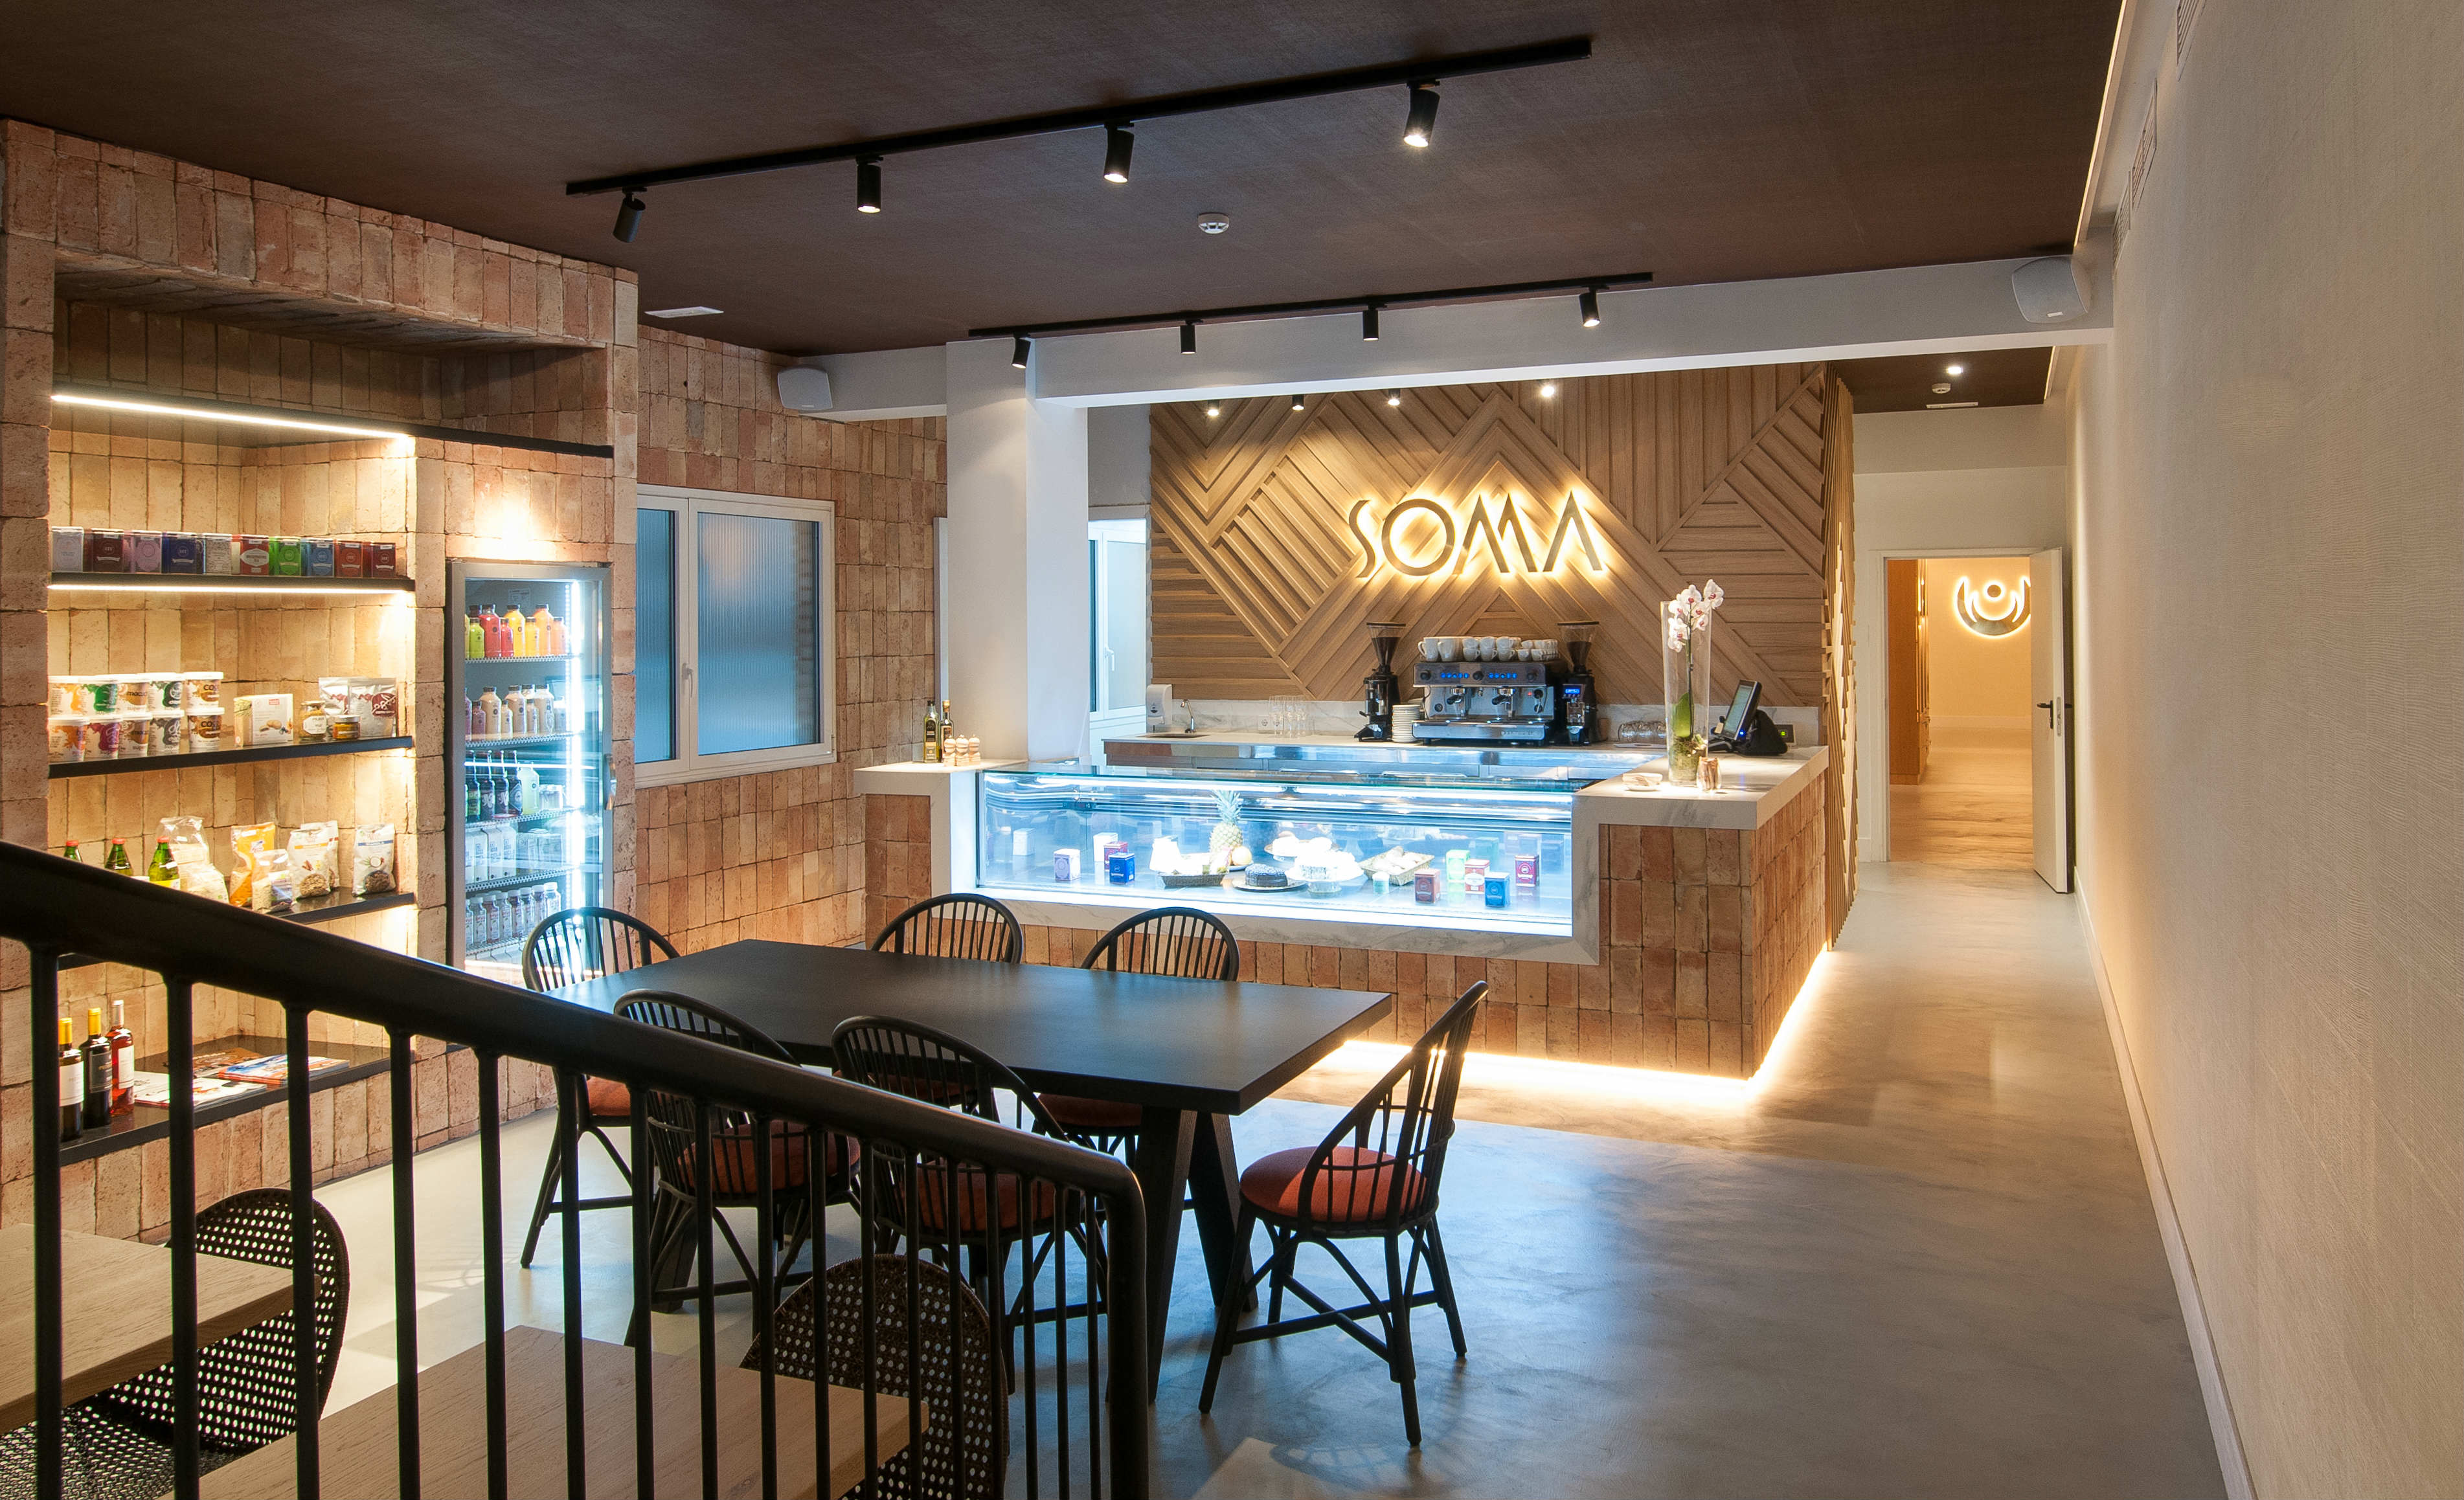 Healthy bar del centro de yoga Soma